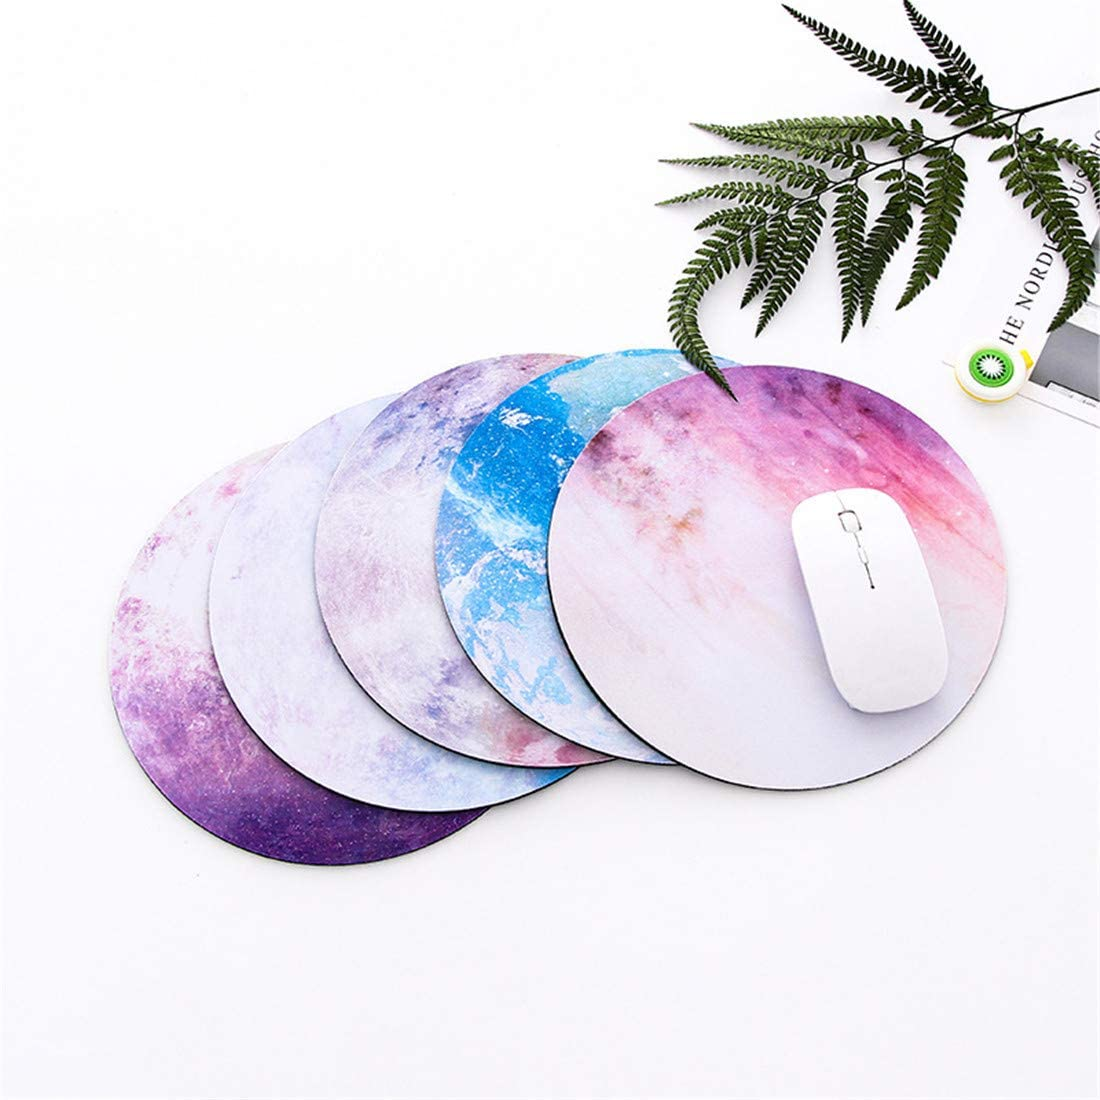 2 Pack Office Round Gaming Mouse Pad with Design Waterproof Non-Slip Rubber Base Mousepad